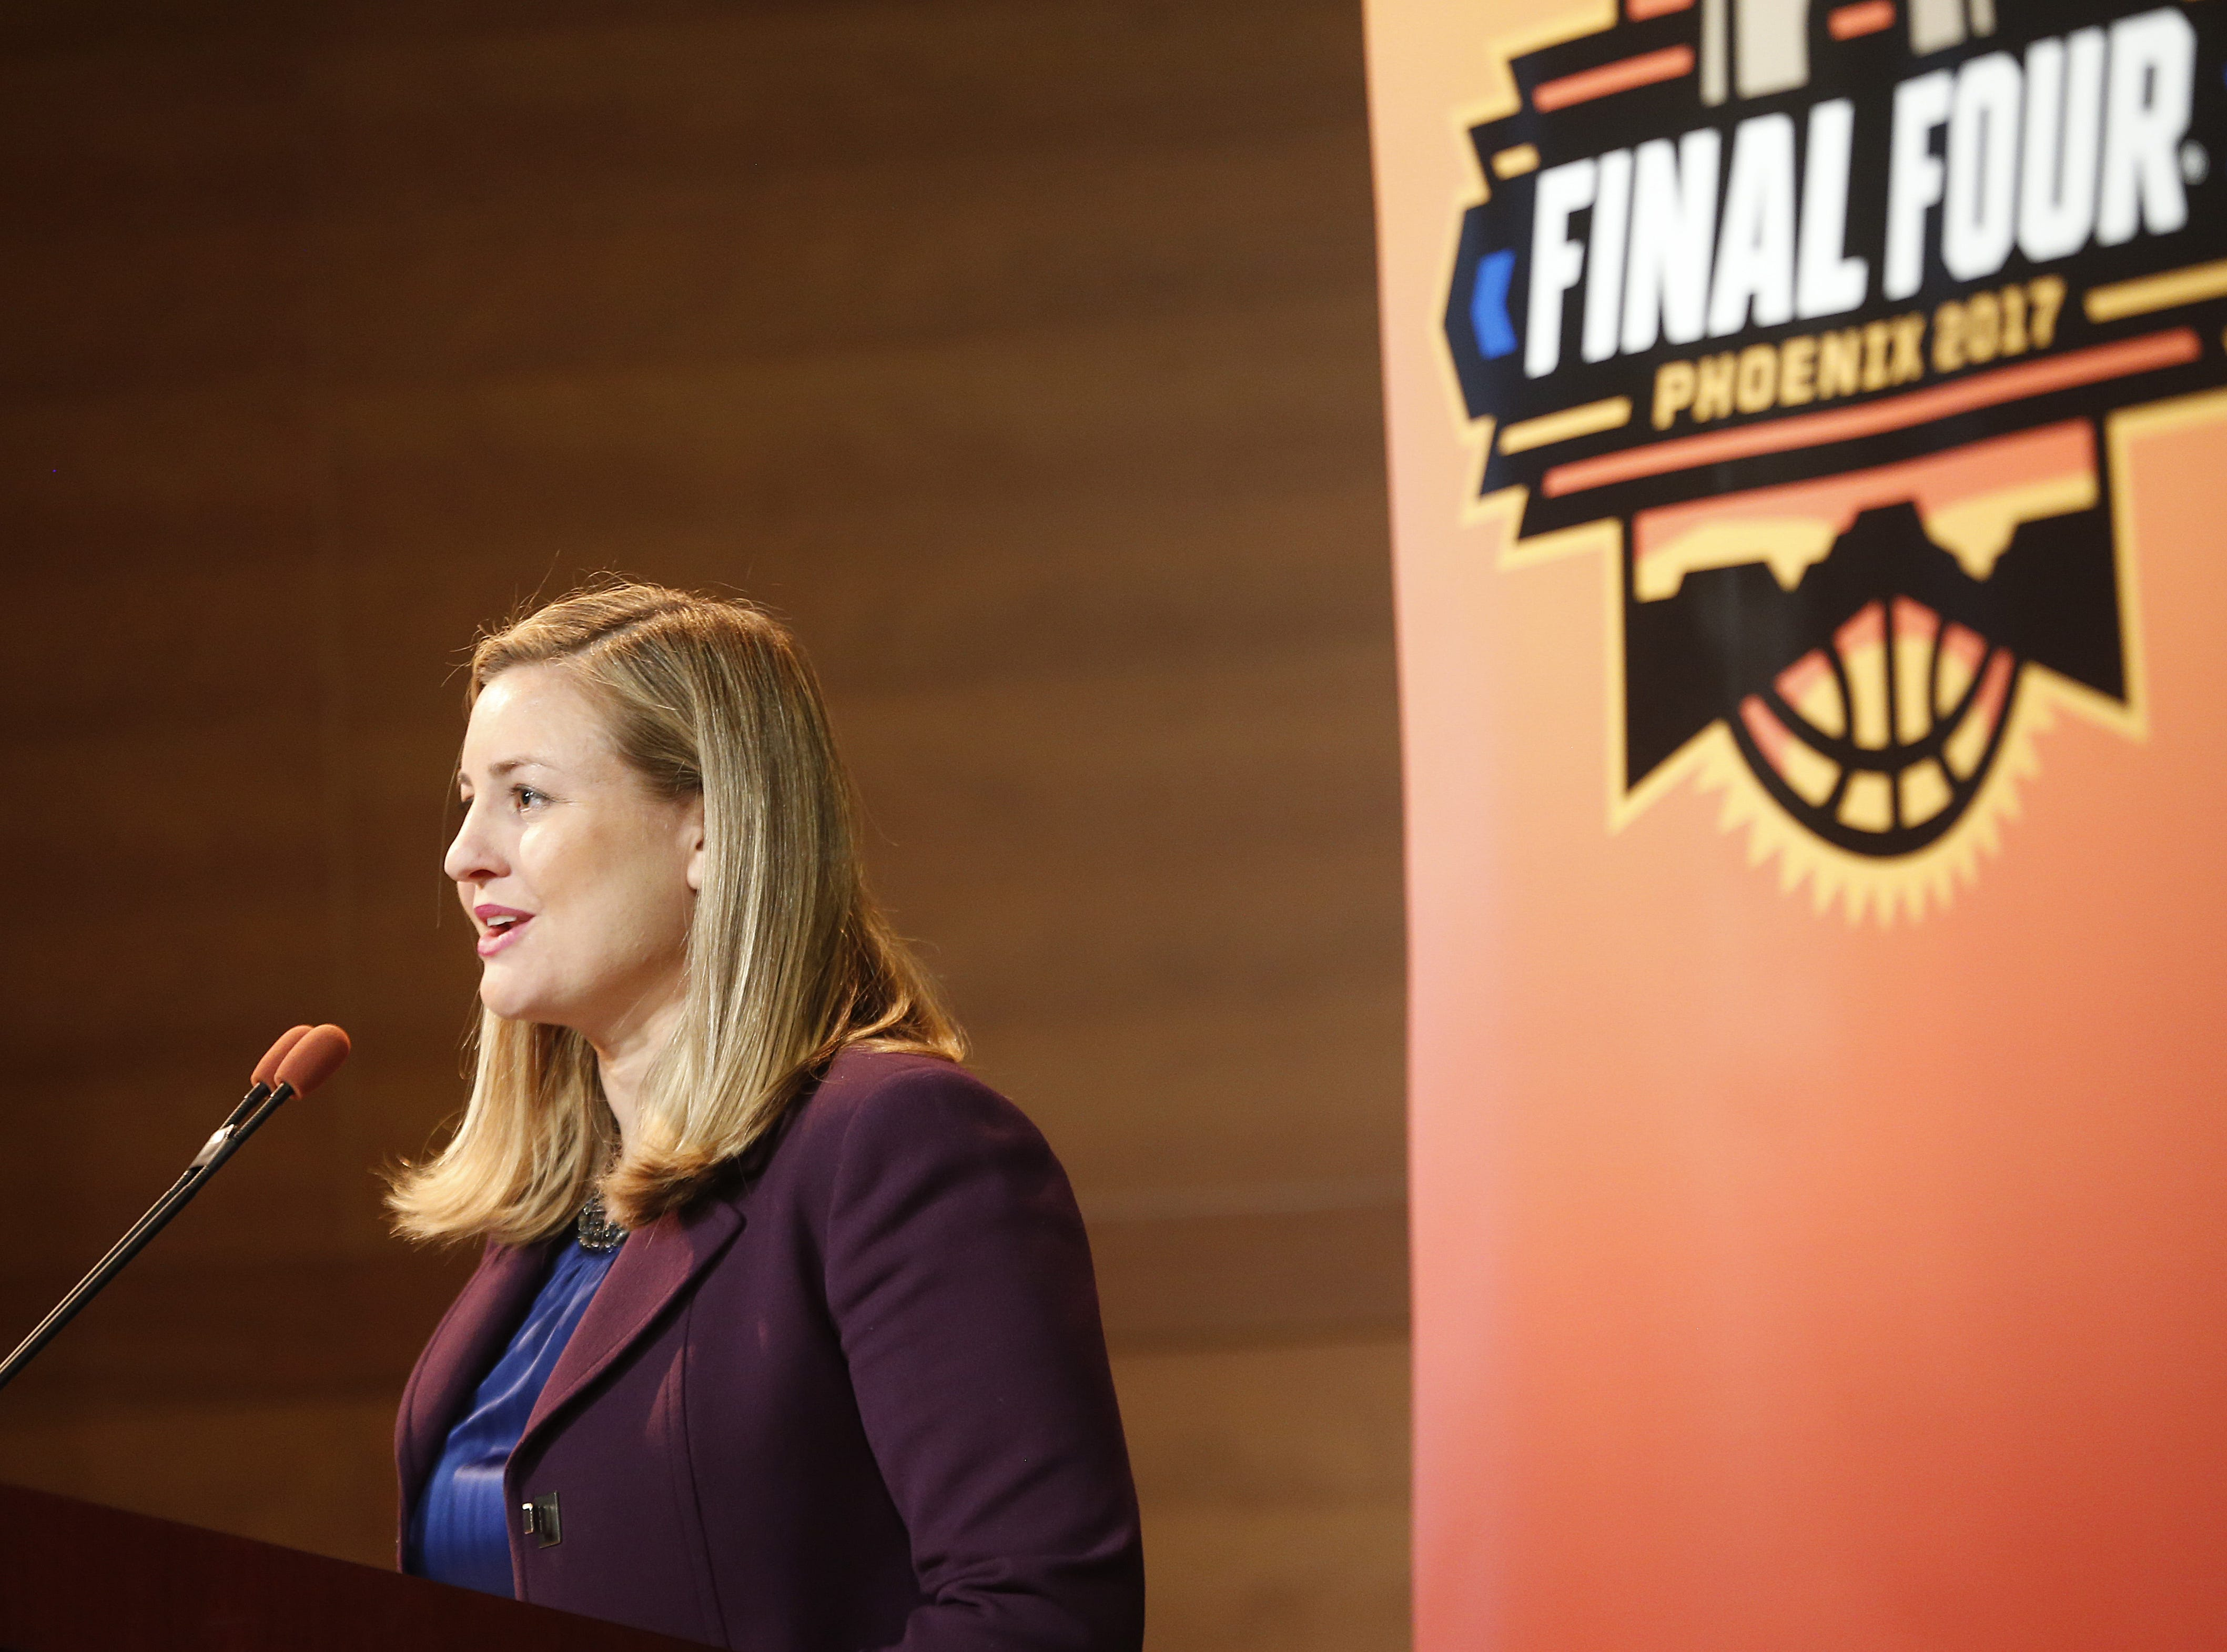 Councilwoman Kate Gallego speaks to the press during the media briefing for the Final Four at the Phoenix Convention Center on March 24, 2017 in Phoenix, Ariz.